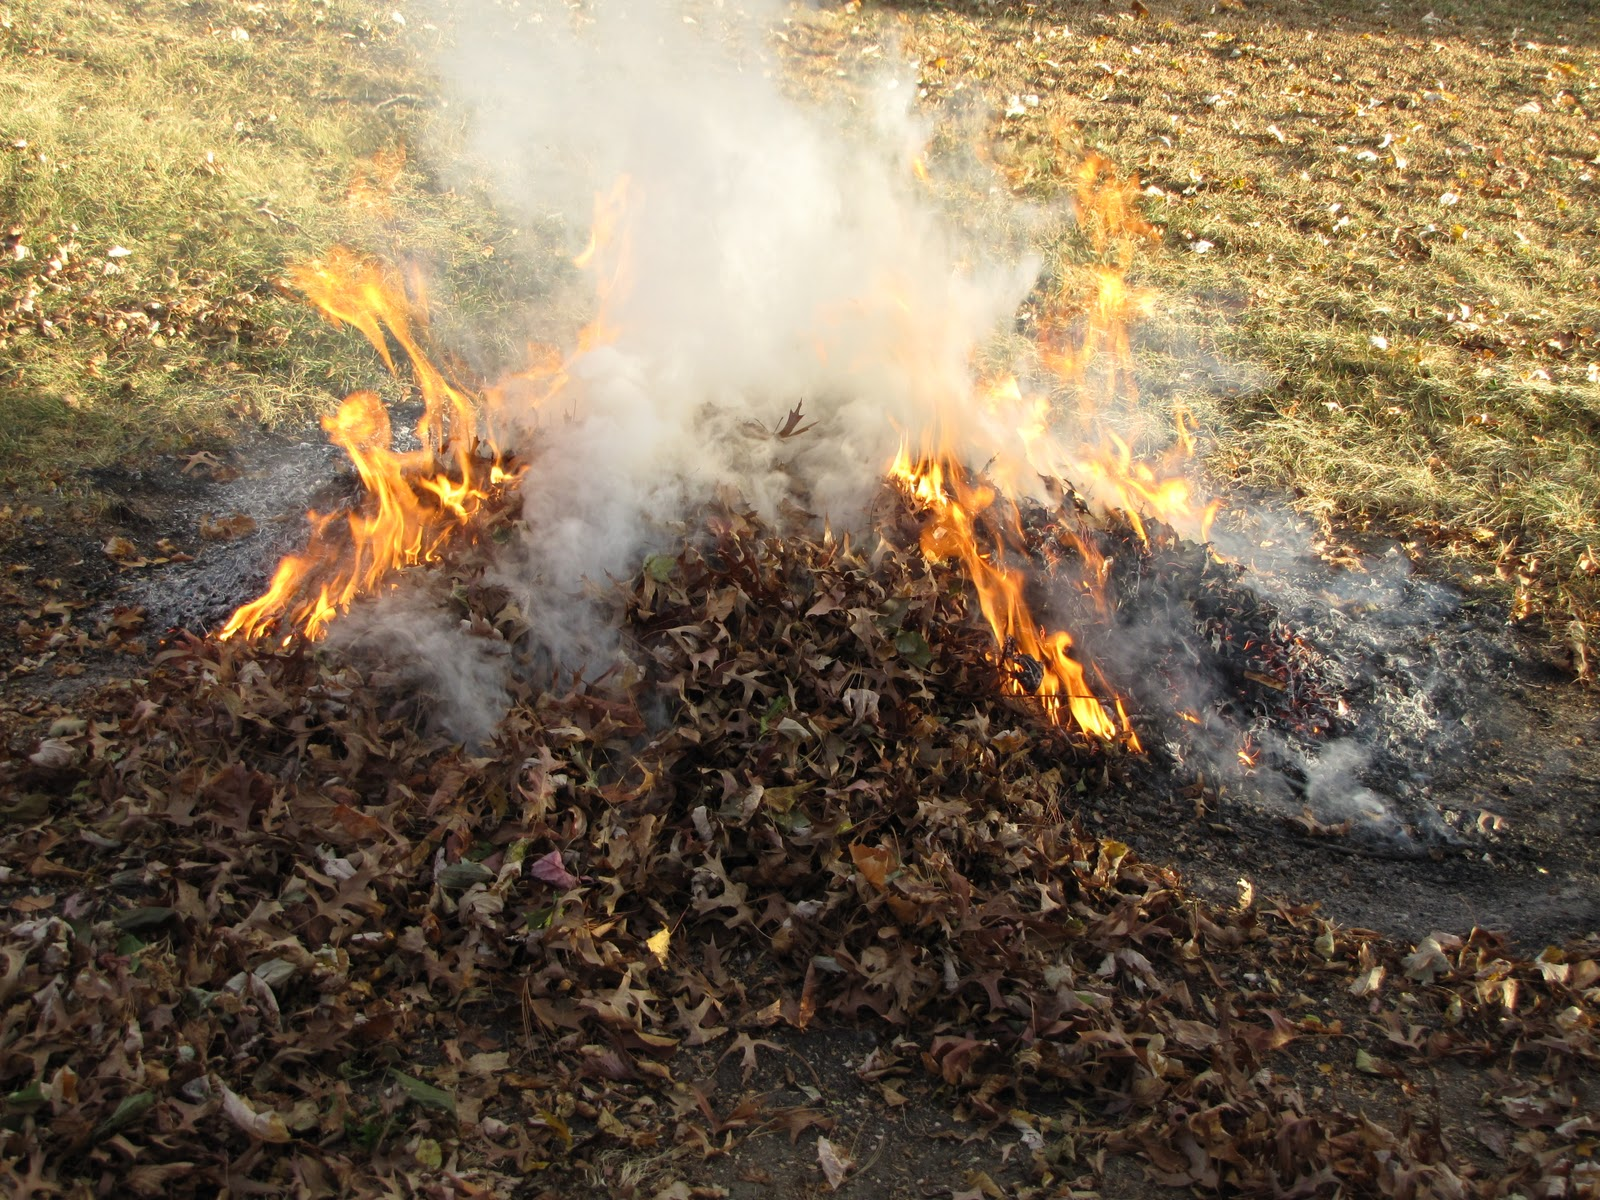 burning leaves should be made illegal Hazards and effects on respiratory health of backyard burning statutes and rules: major illegal burning cases (large piles of refuse, whole structures.